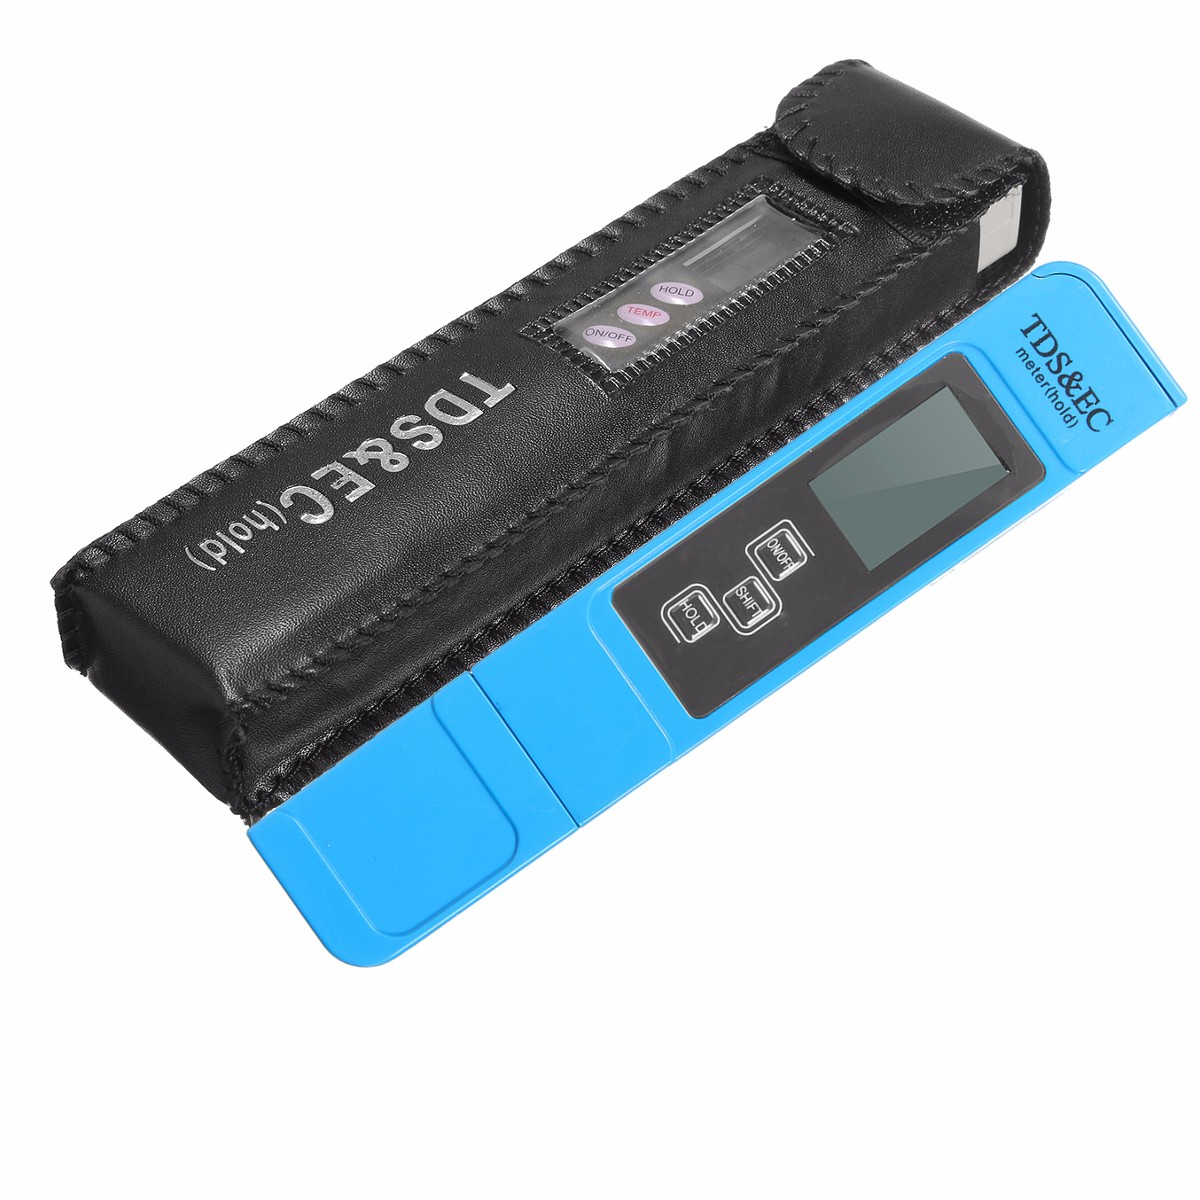 3 in 1 Digital LCD TDS EC Temperature PPM Meter Tester Filter Pen Stick Water Quality Purity Tester